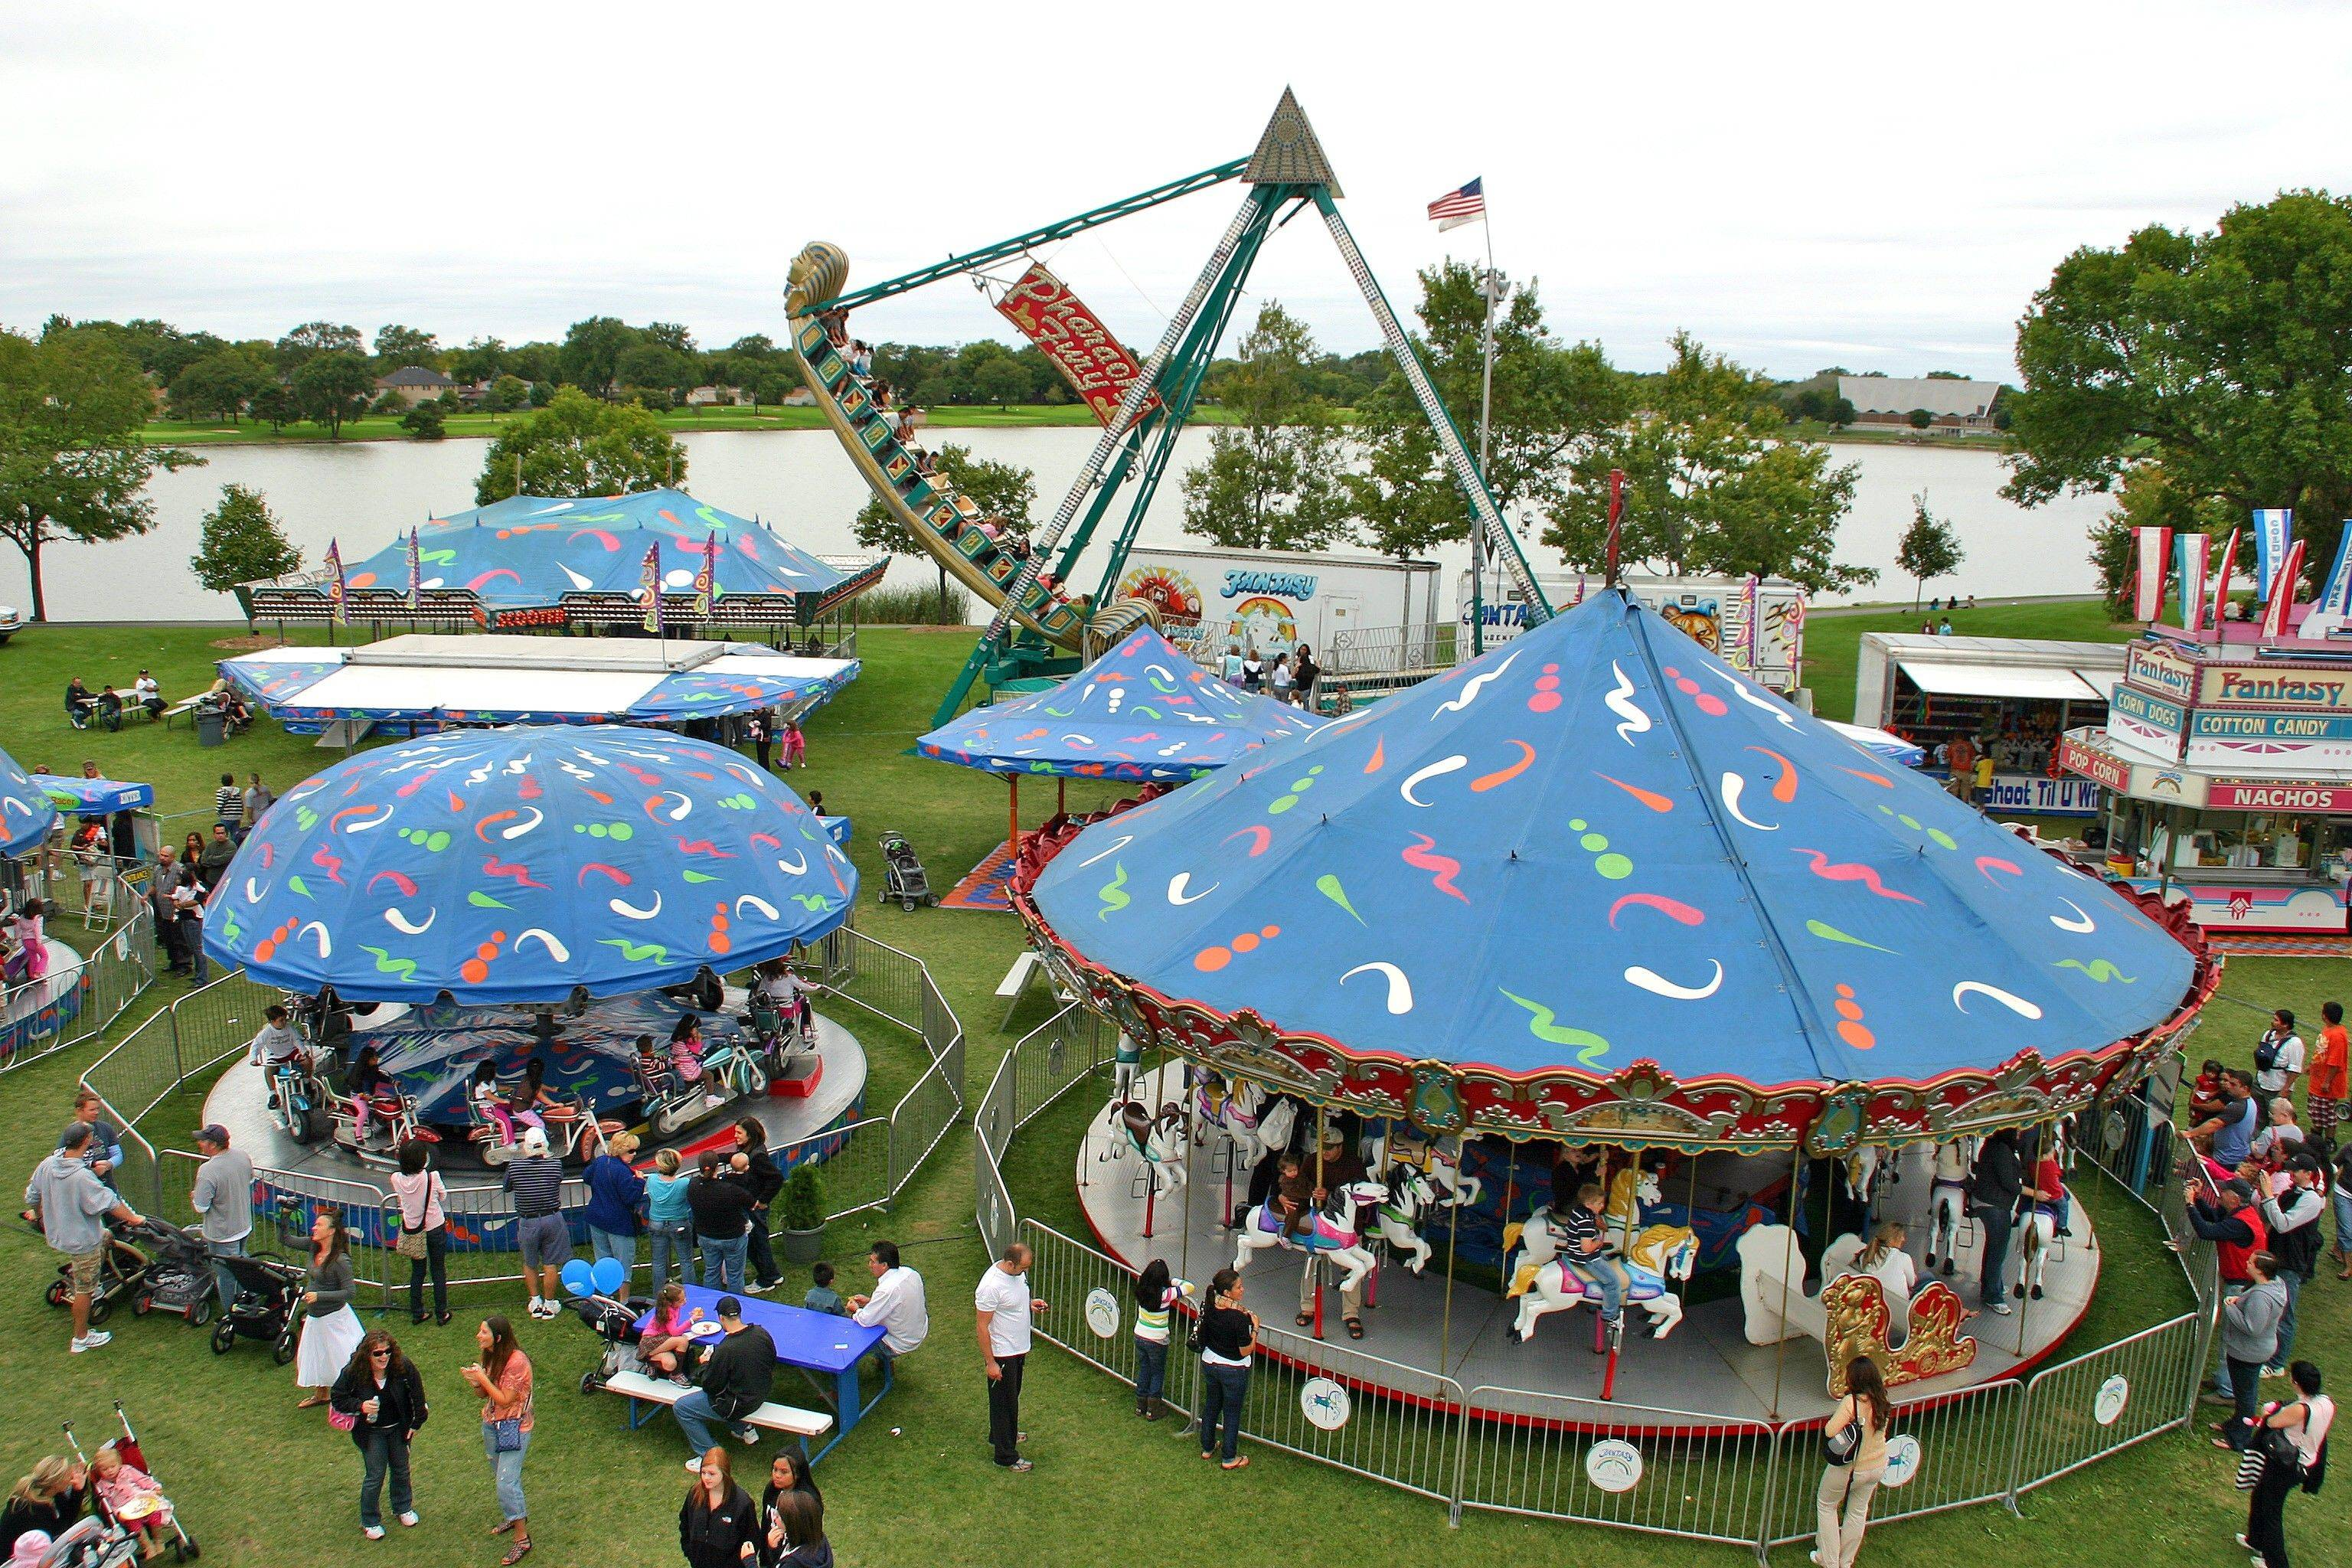 Fall Fest 2011 features a full carnival with a 55-foot Ferris wheel, a kids midway, rides, booths, games and food.